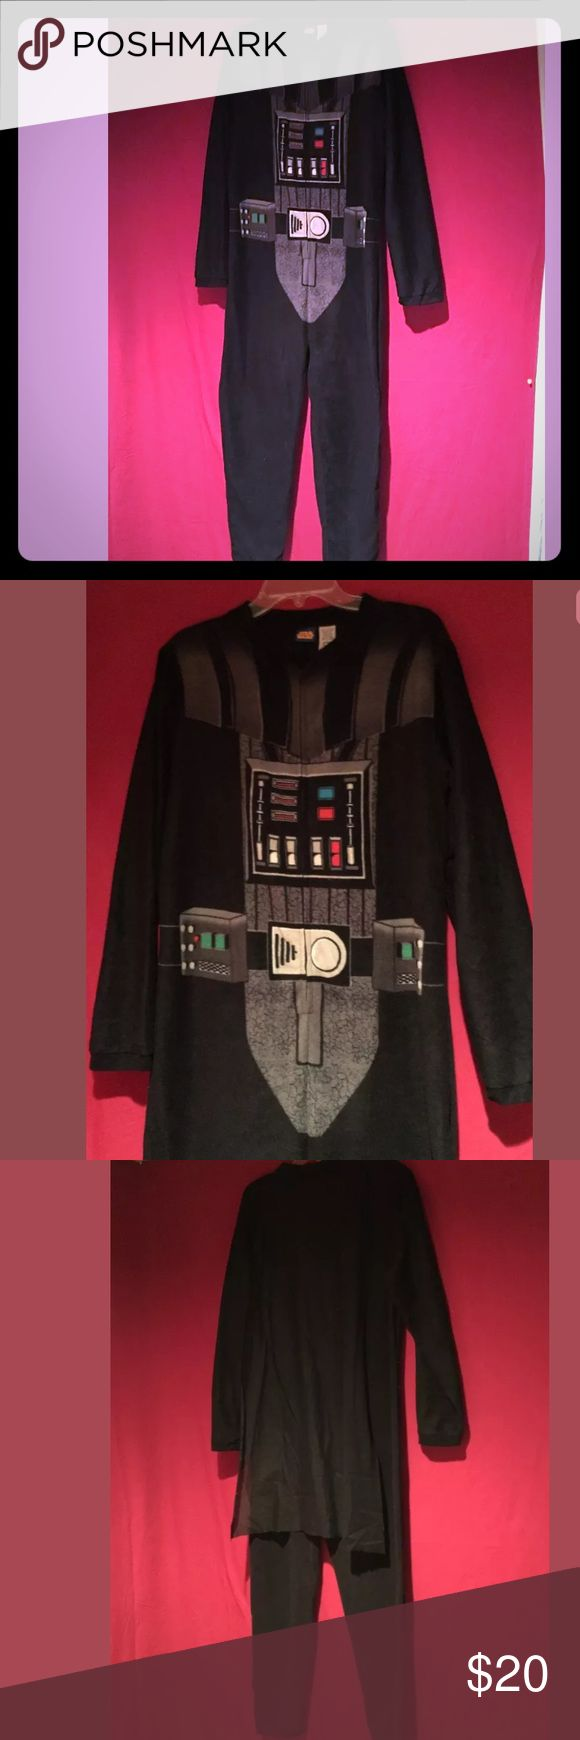 Star Wars Darth Vader Pajamas men's Medium NWOT Awesome onesie pajamas!   Star Wars official brand, Darth Vader.   Soft velvety feel.   Men's size Medium, would fit women's Large.  Cape on the back.   New without Tags. Intimates & Sleepwear Pajamas